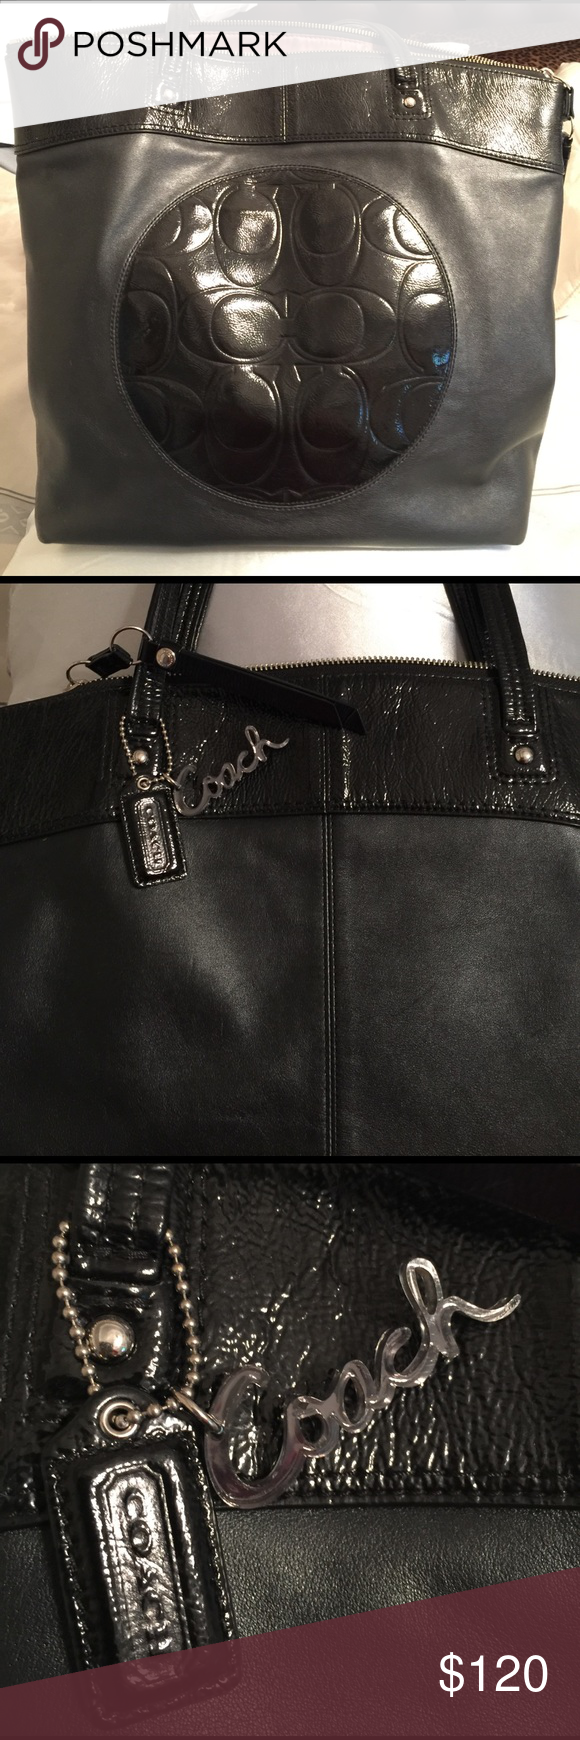 Coach purse Coach purse tote. Black leather with shiny material with logo on front. I love this purse. I just purchased another so want to sell. It is in good condition and has been used but in great shape. Coach Bags Shoulder Bags